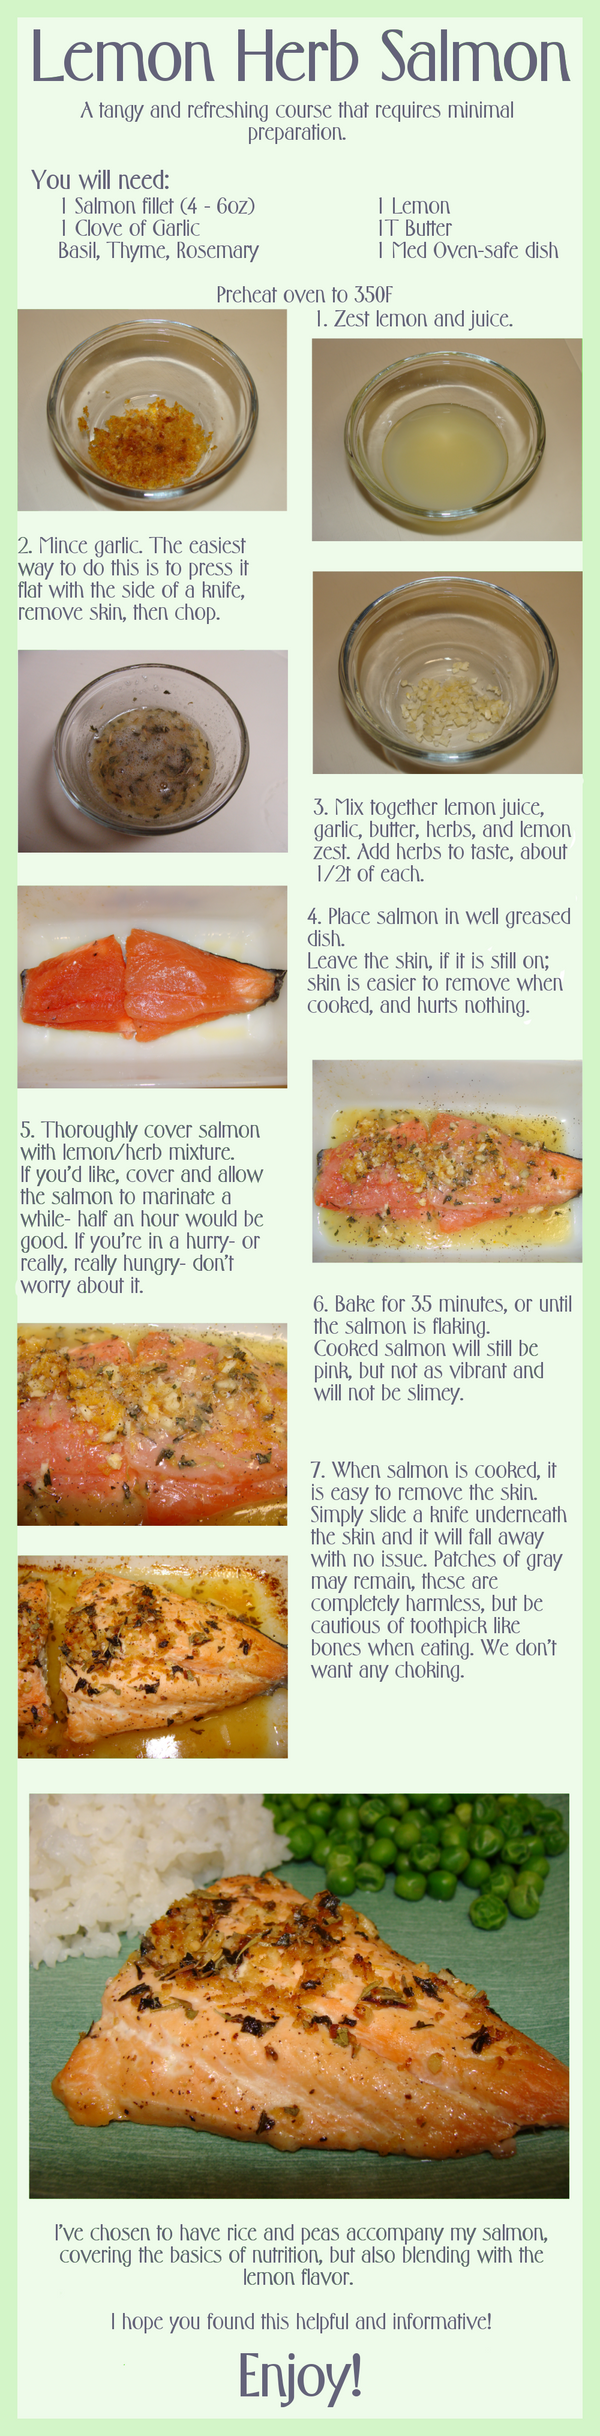 Lemon Herb Salmon by ElwynAvalon